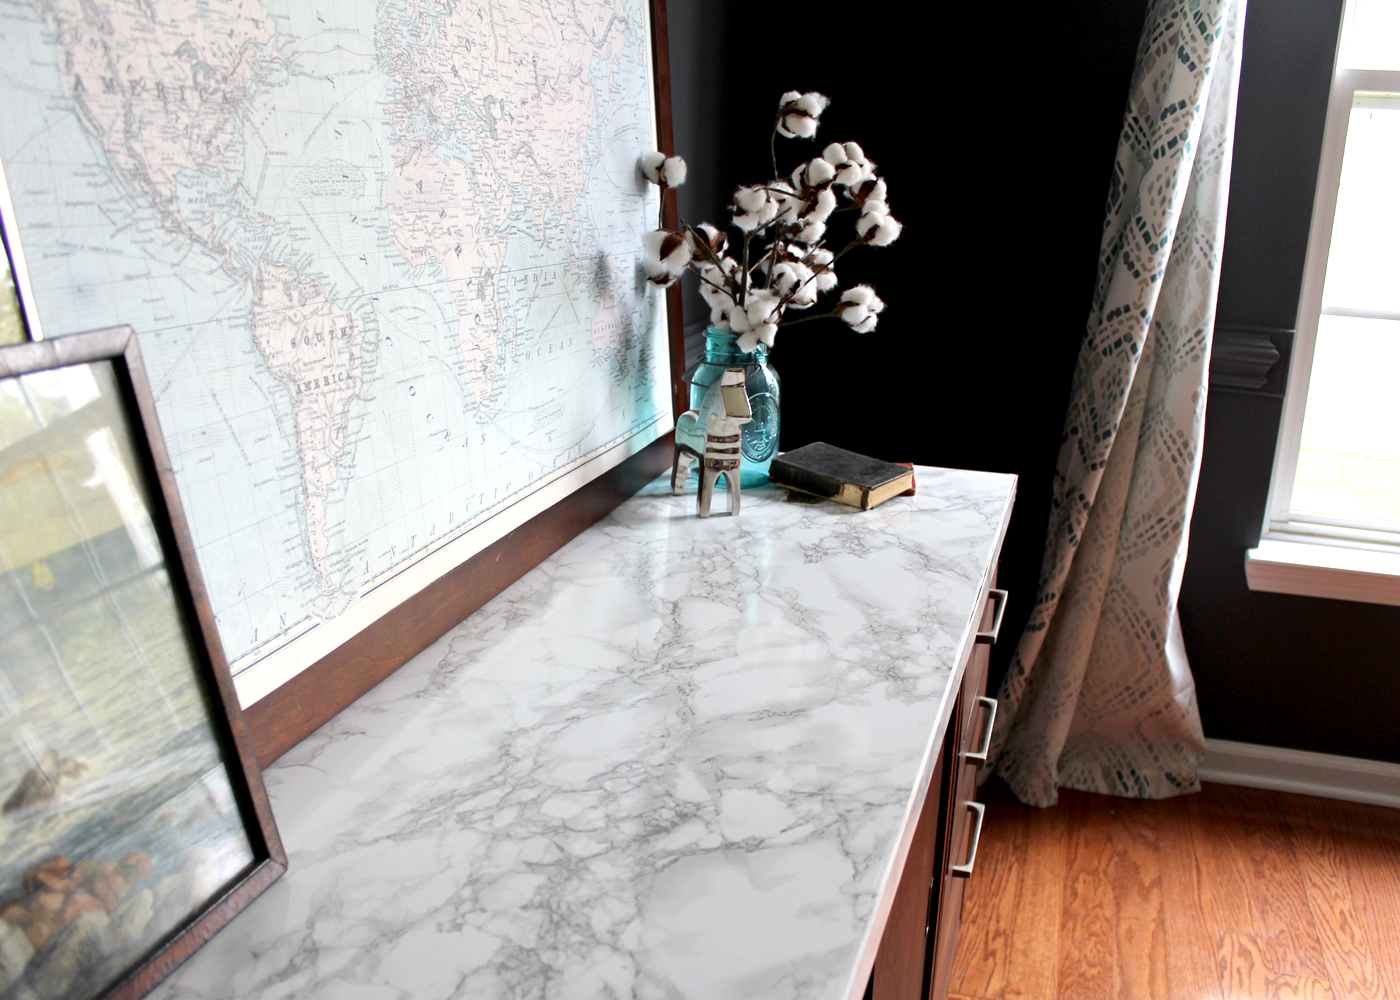 how to make a faux marble tabletop for under $10